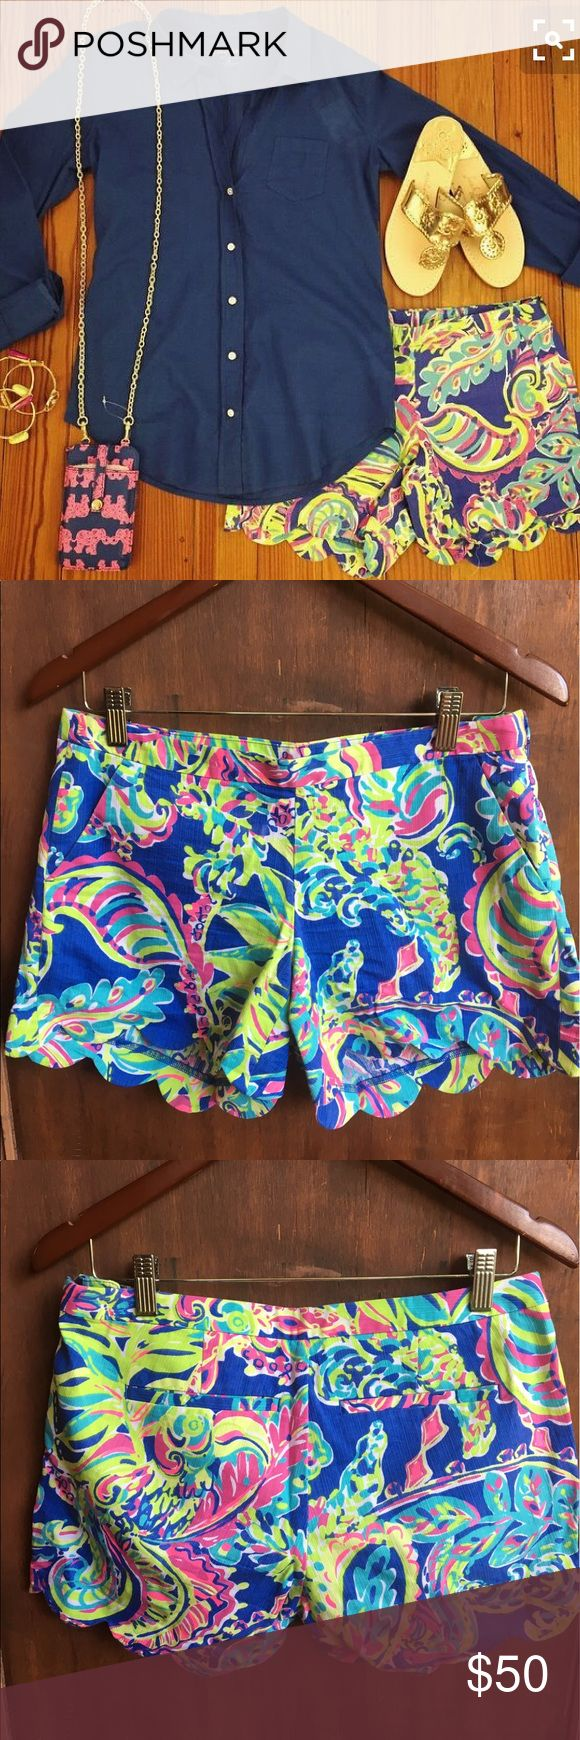 Lilly Pulitzer Scalloped Shorts ONE WEEK FLASH SALE ‼️ on 5/17 i am taking EVERYTHING to the local Platos and donating what they dont take. which means im ACCEPTING most OFERS!              NOW OR NEVER.                          BUNDLE this with another item to save! These are in great condition! Never put in the dryer. Smoke free pet free home. Theyre too big on me now. If you have a 0 id be interested. I really like that these shorts zip on the side because it has a smoother look when you…